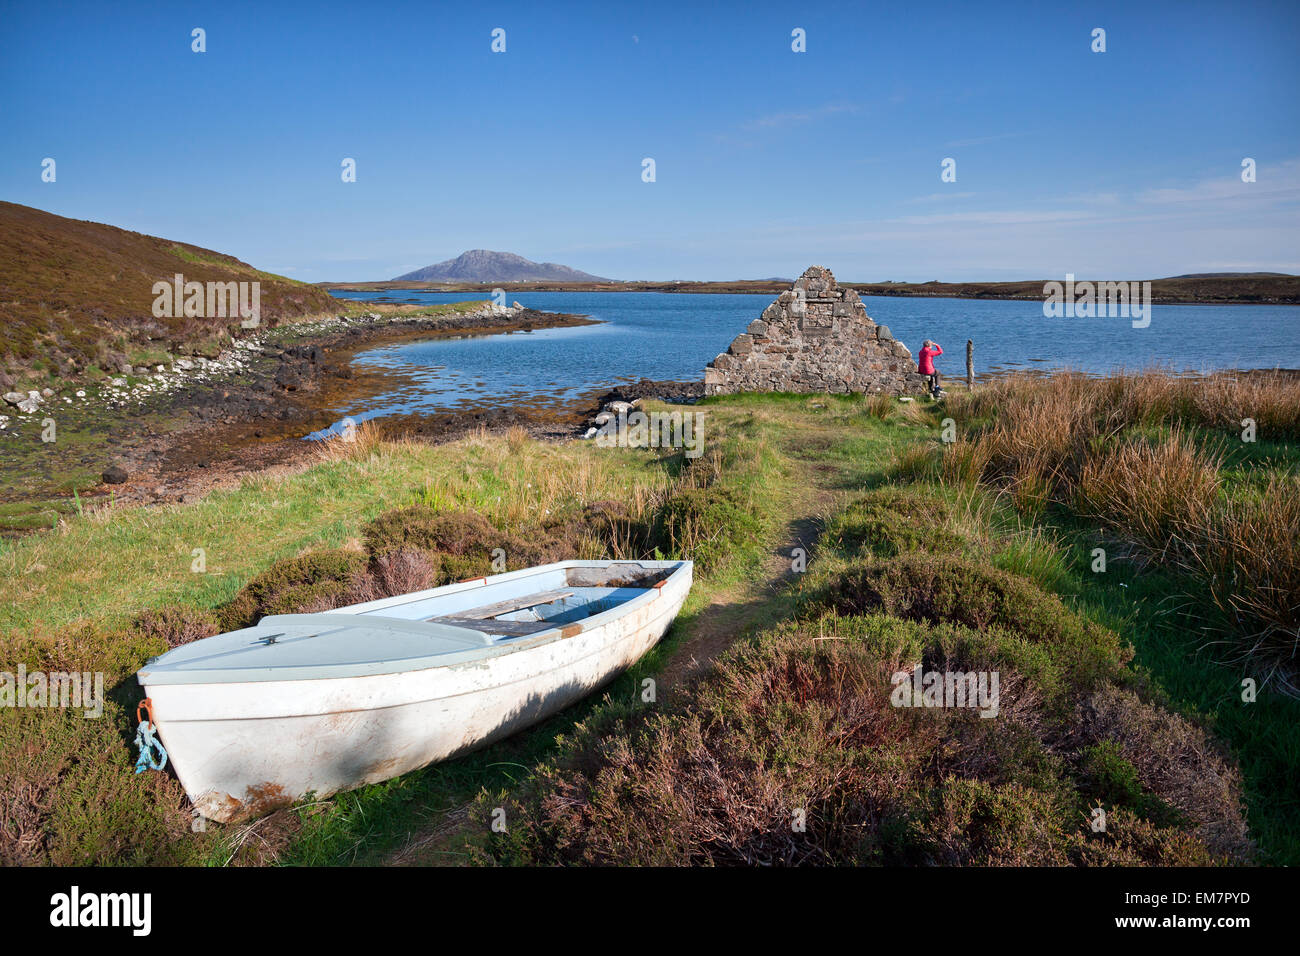 Loch Langass, Isle of North Uist, Outer Hebrides, Scotland . - Stock Image